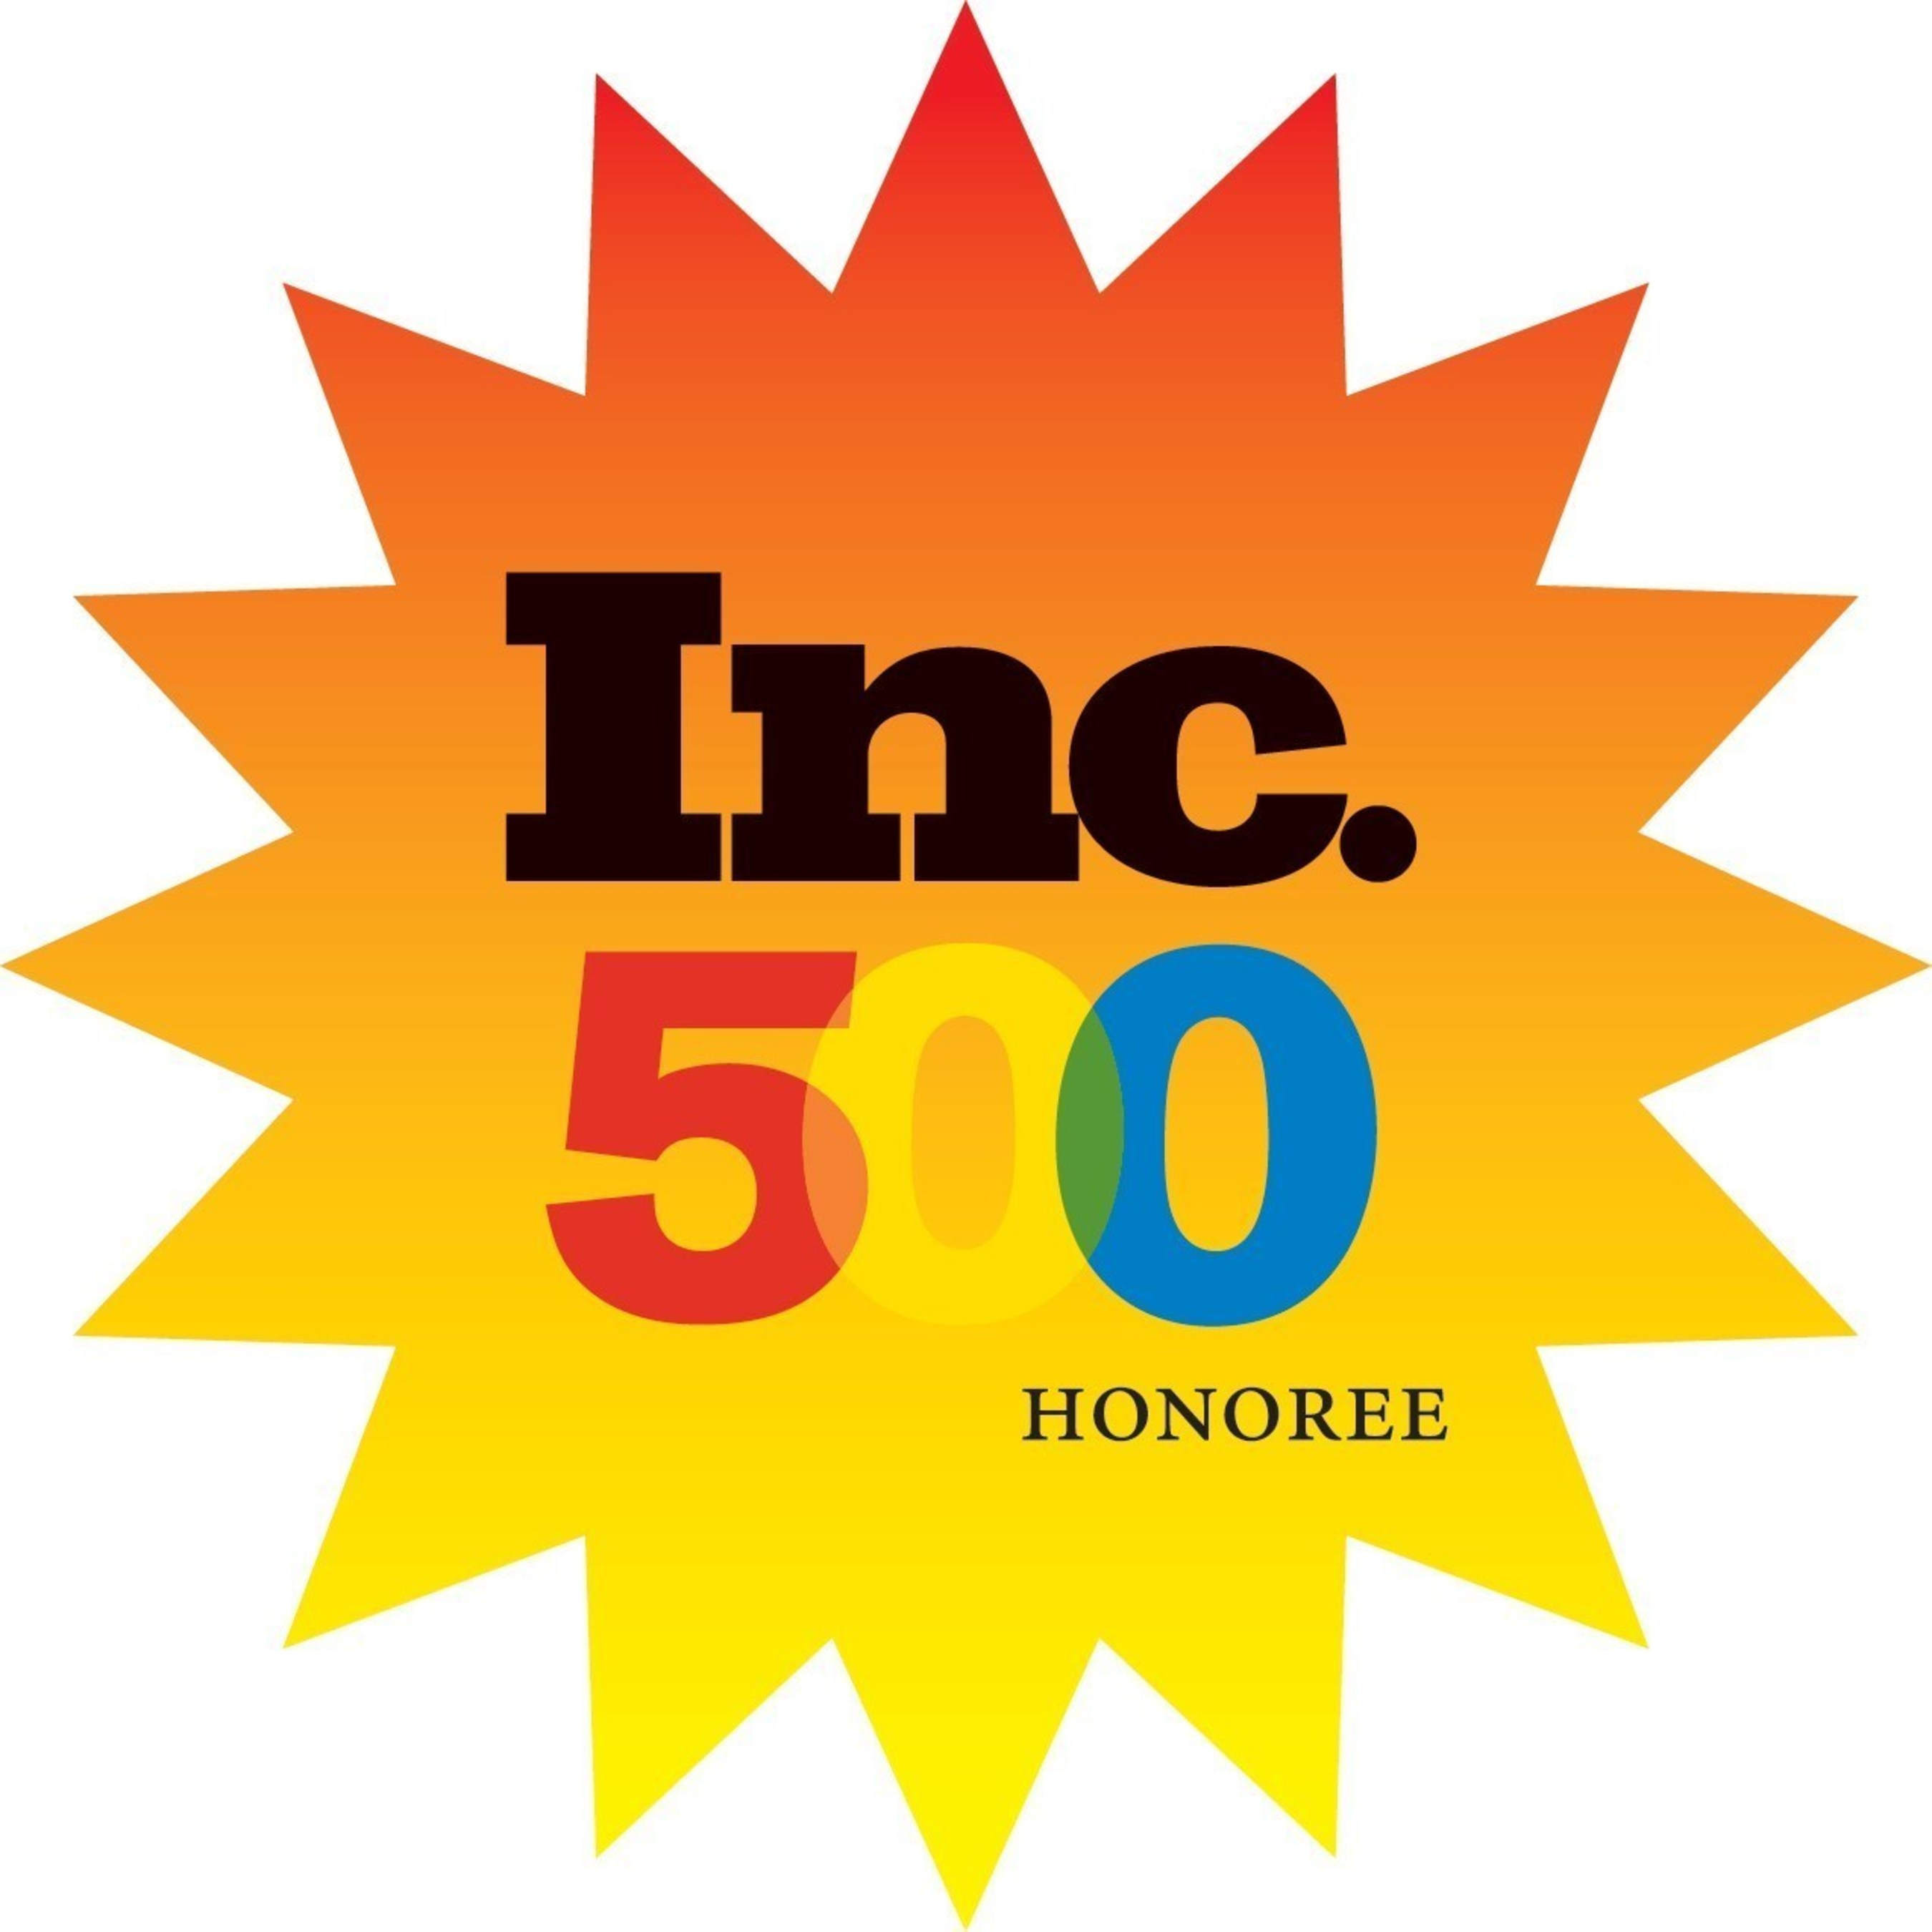 Elevate is the only legal services provider in the 2016 Inc. 500, the top tier of the Inc. 5000